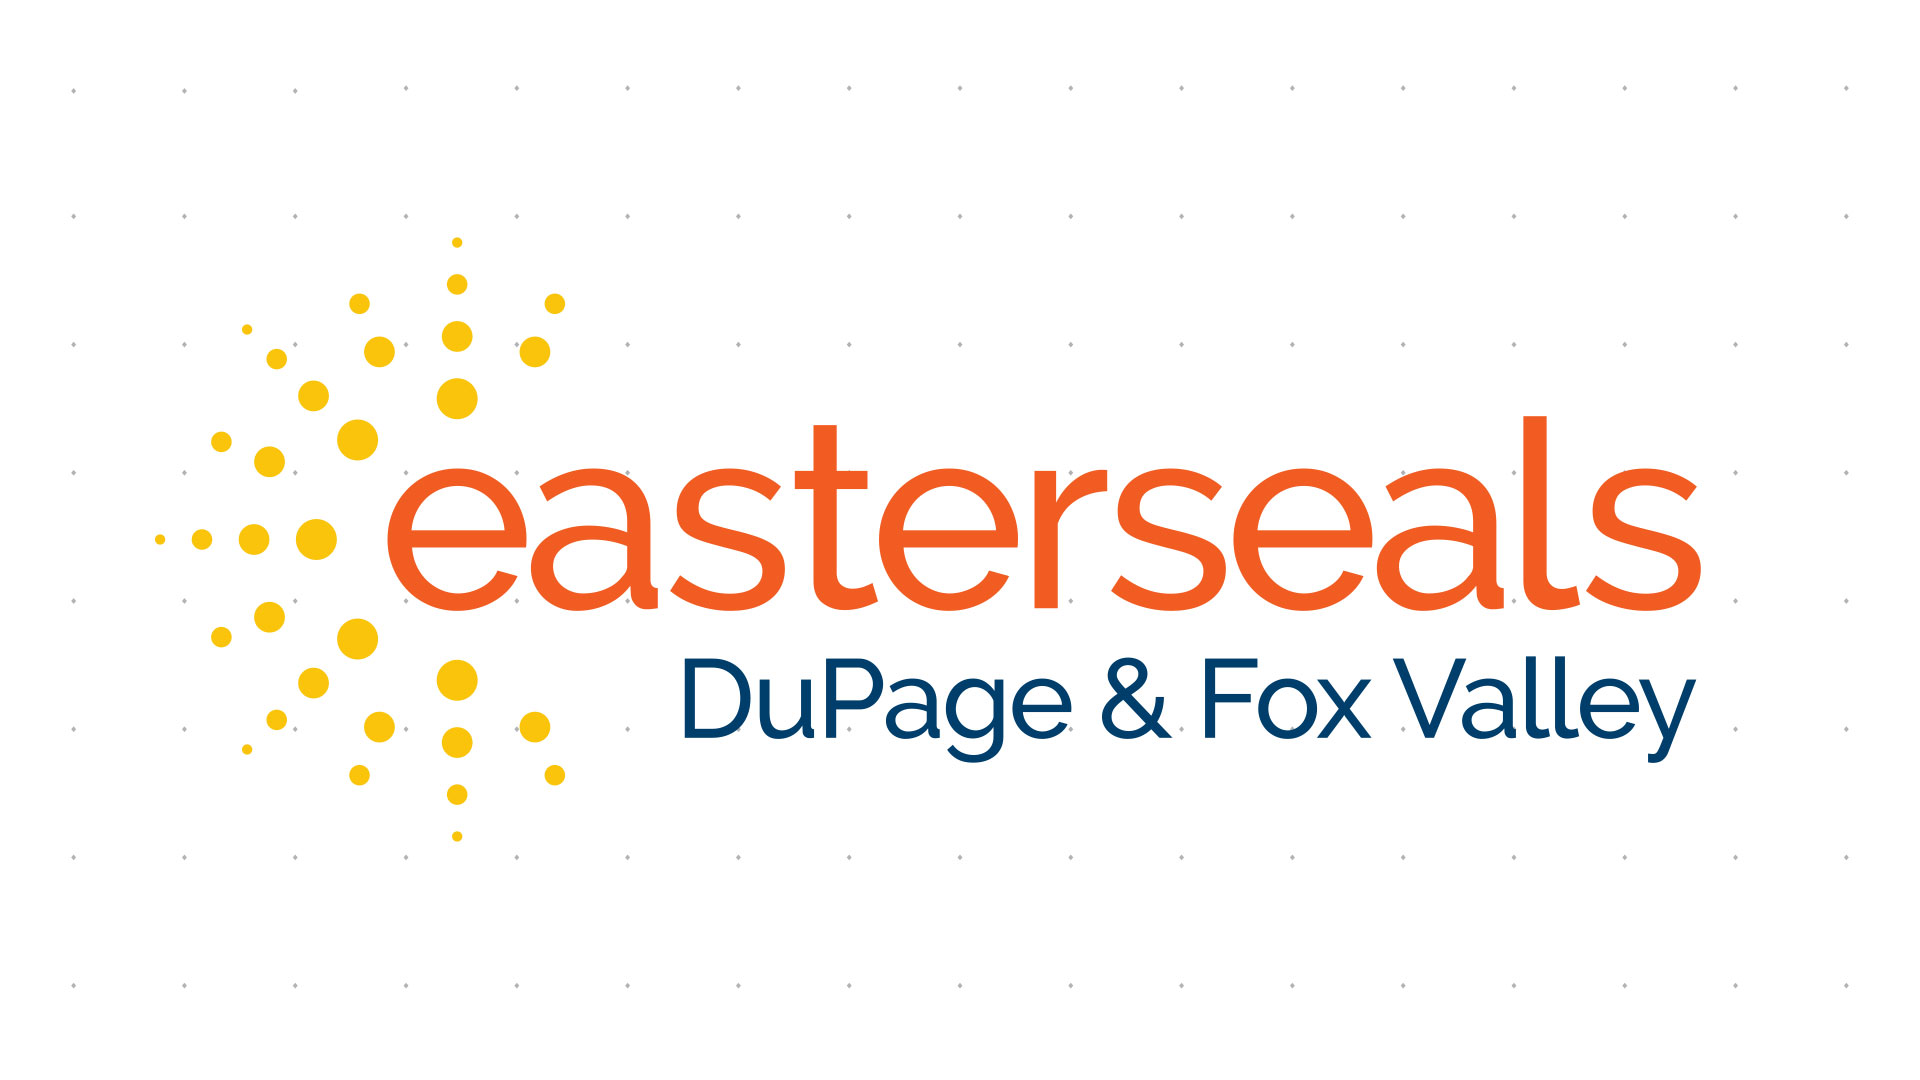 Easterseals DuPage & Fox Valley